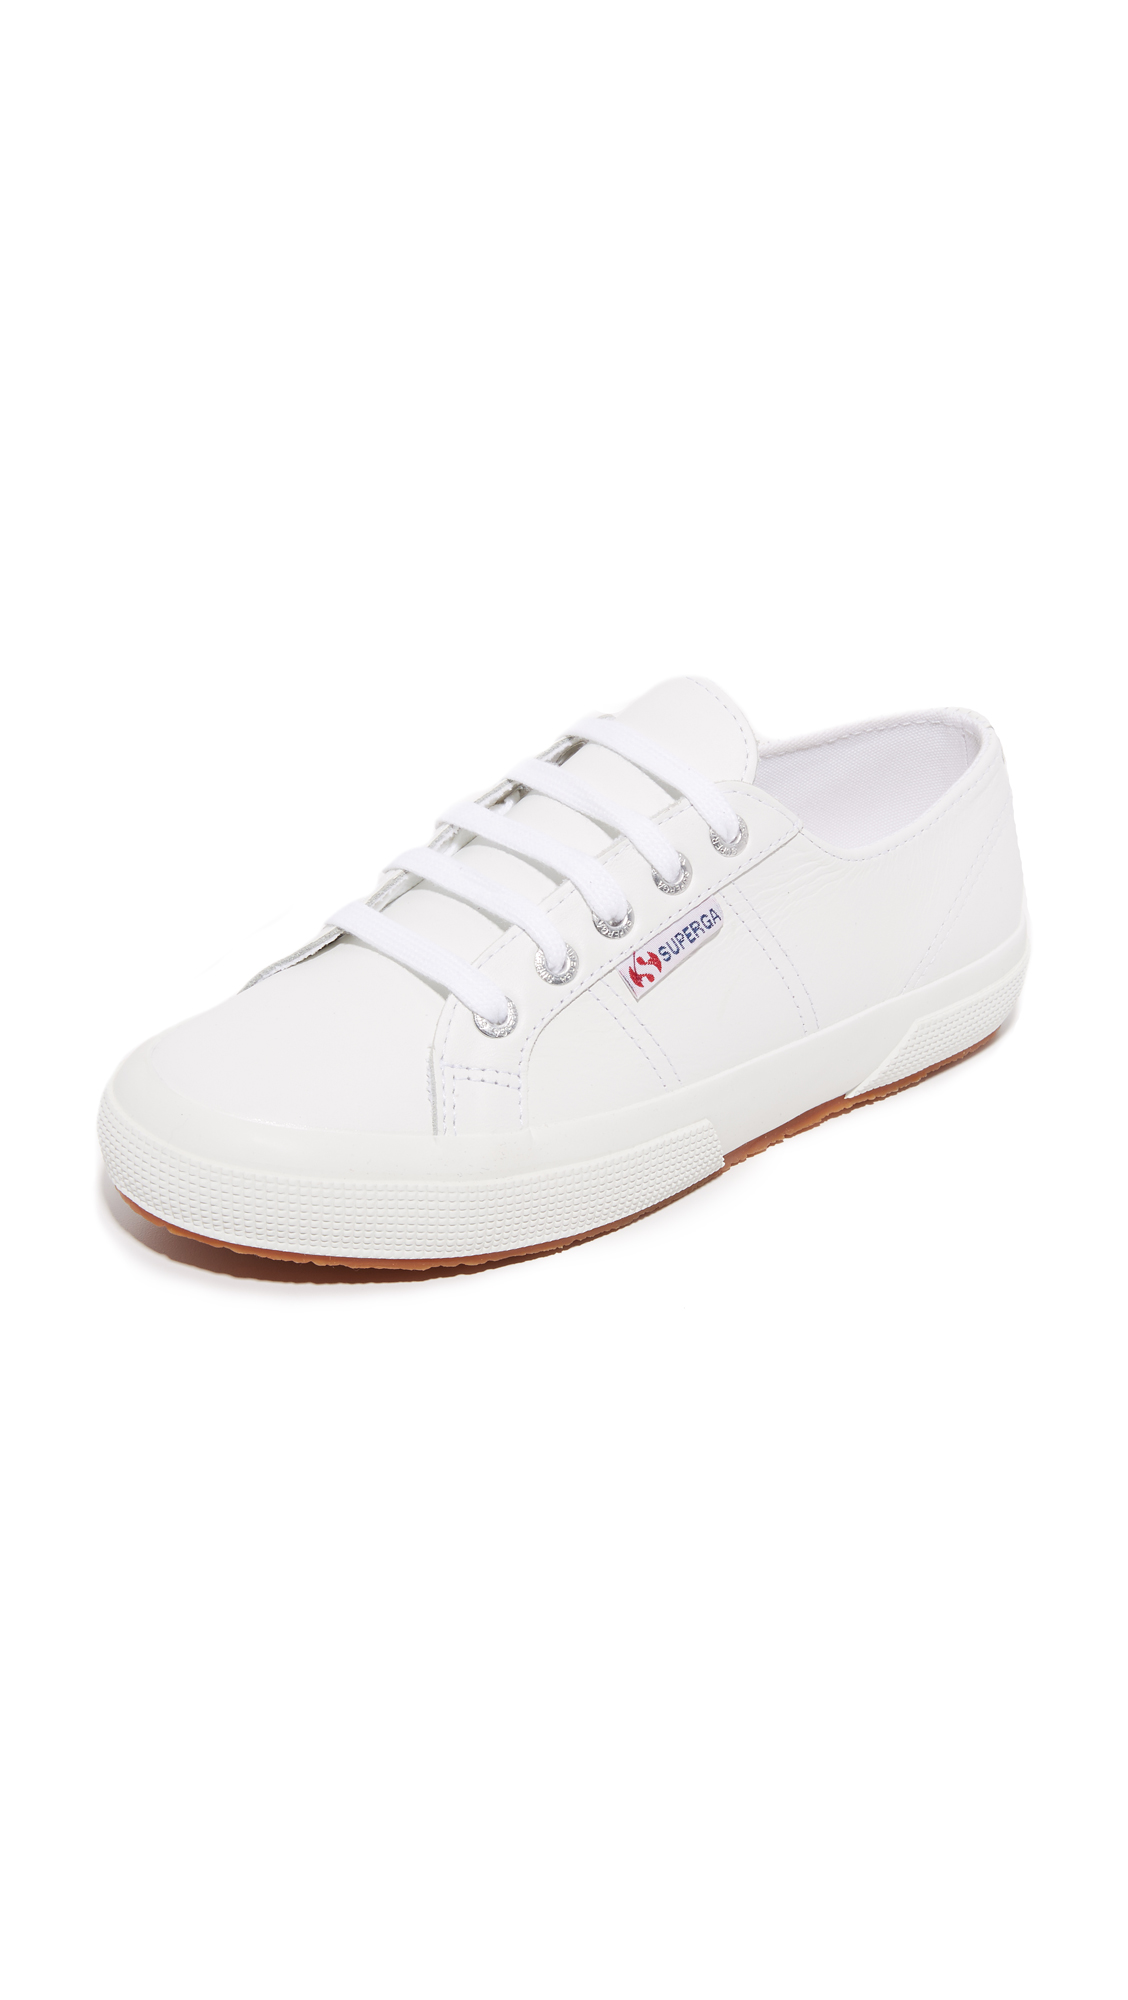 Superga 2750 FGLU Sneakers - White